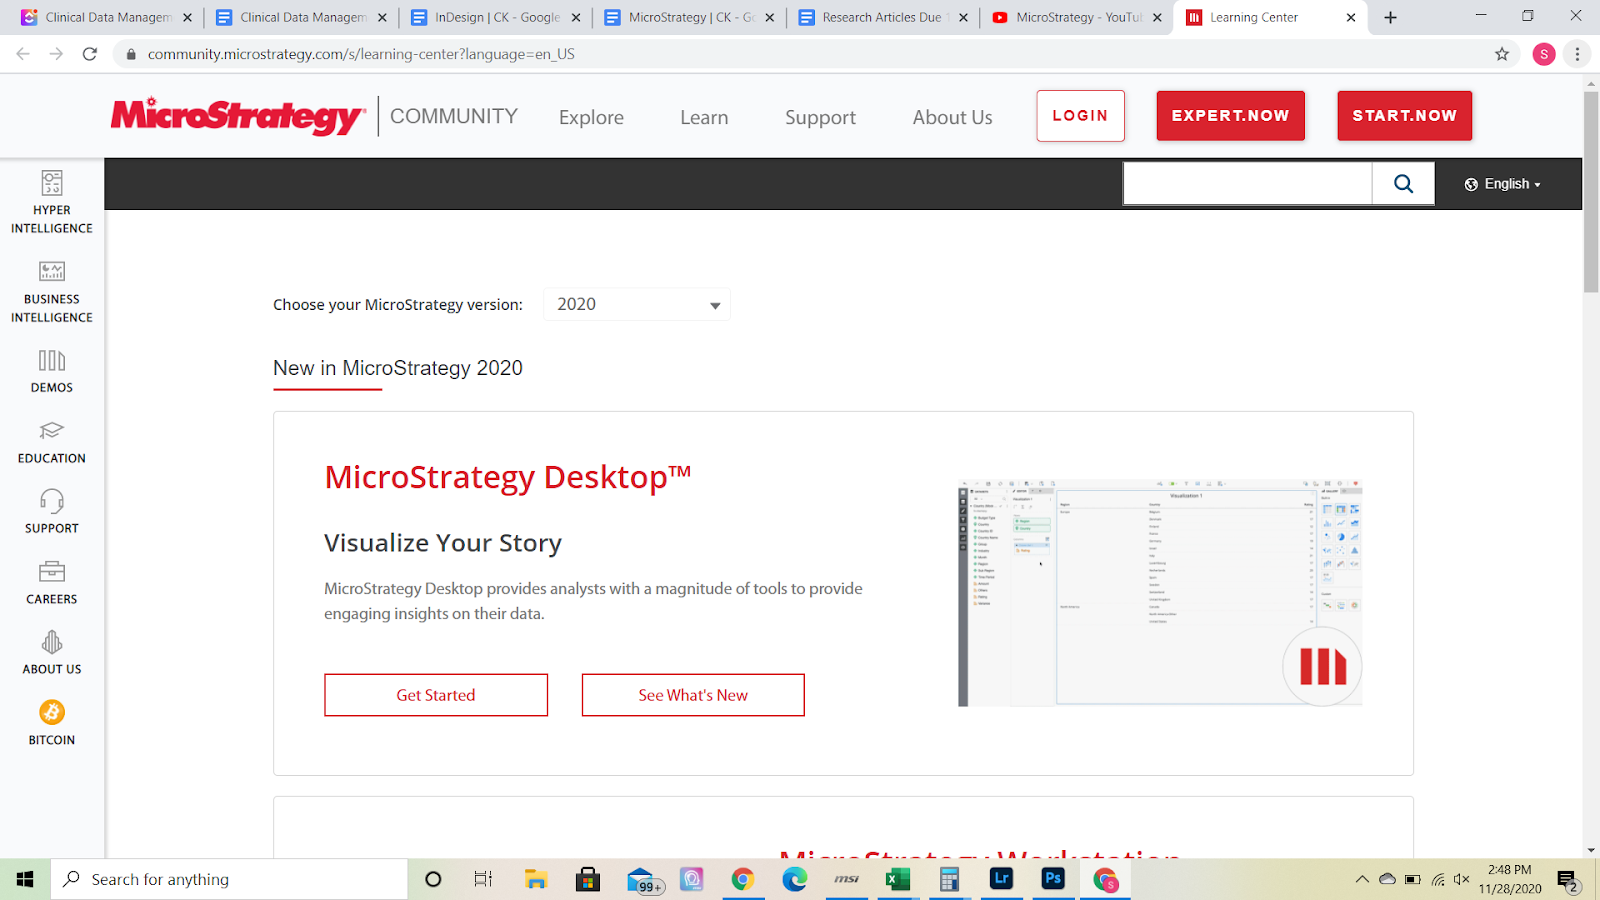 How to Learn MicroStrategy: Best Courses to Master This Big Data Application